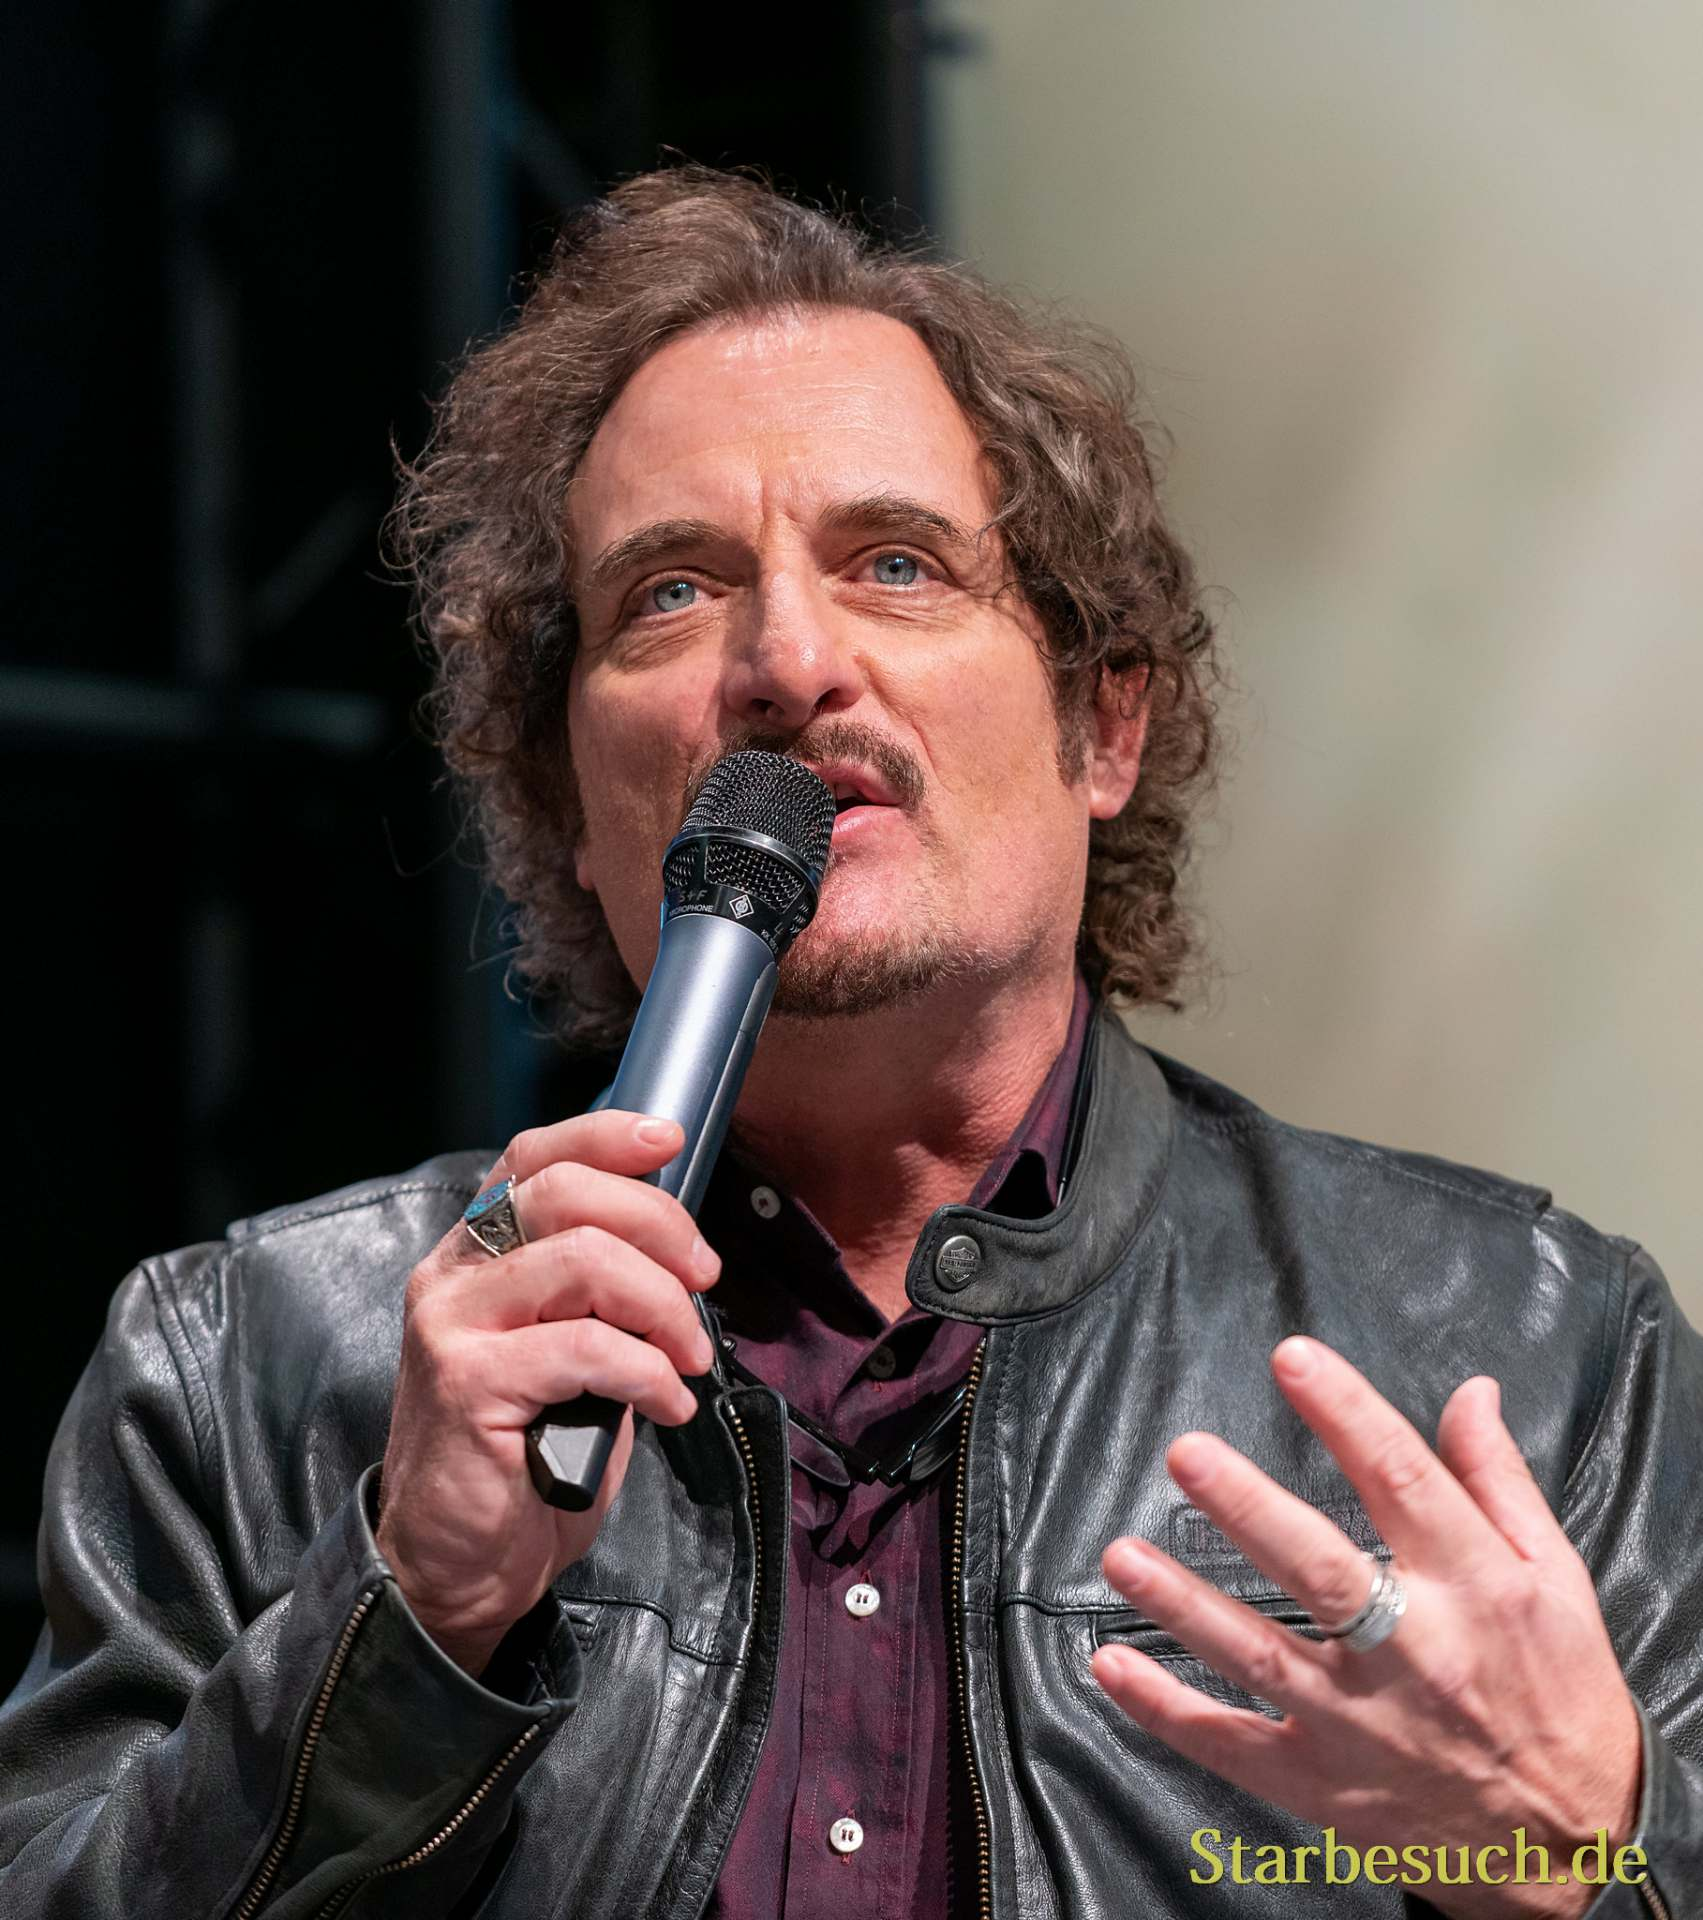 DORTMUND, GERMANY - December 7th 2019: Kim Coates at German Comic Con Dortmund